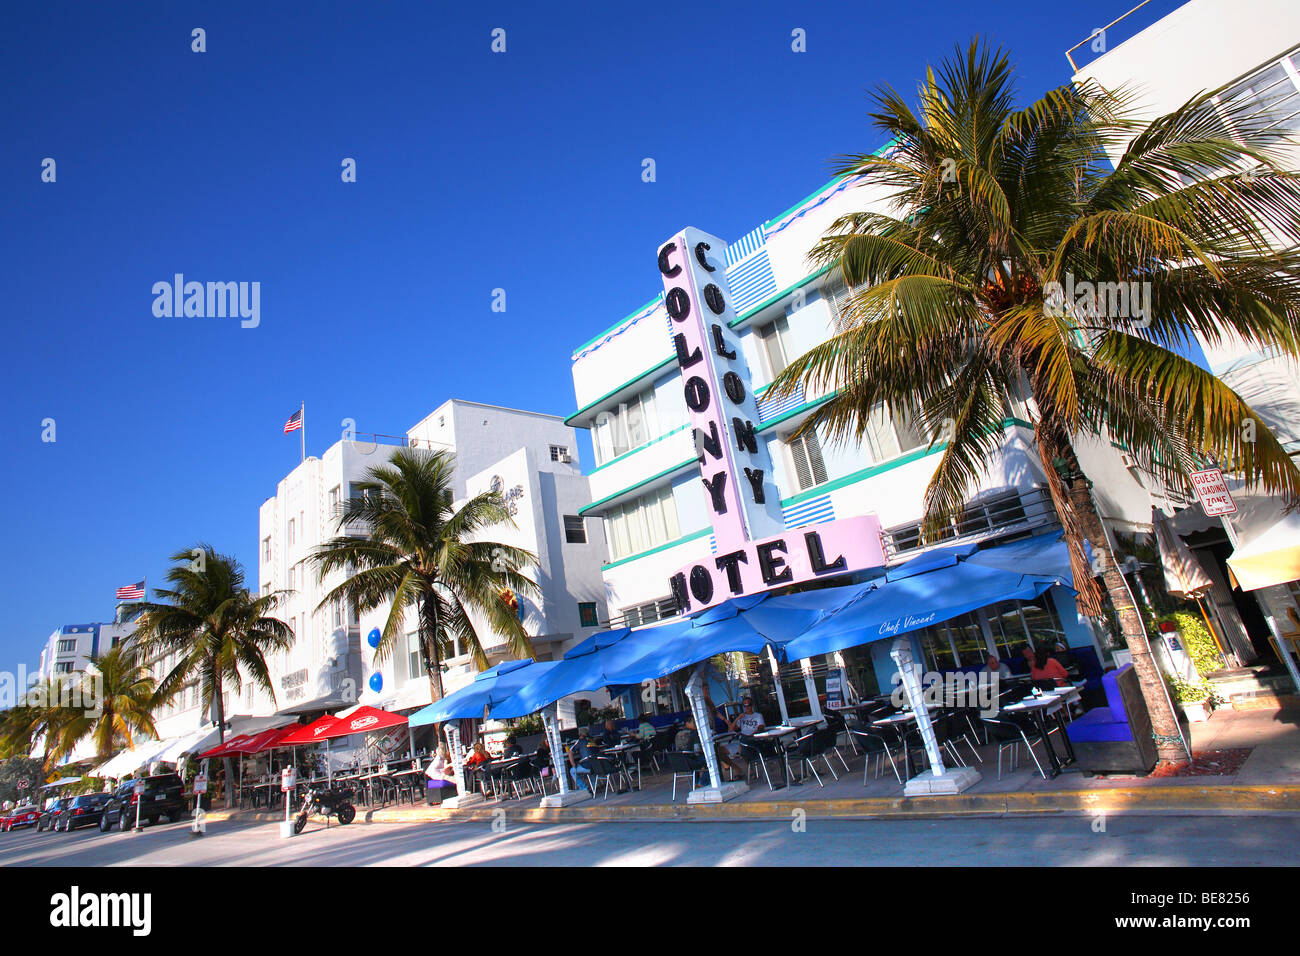 Blue Ocean Hotel Miami Beach